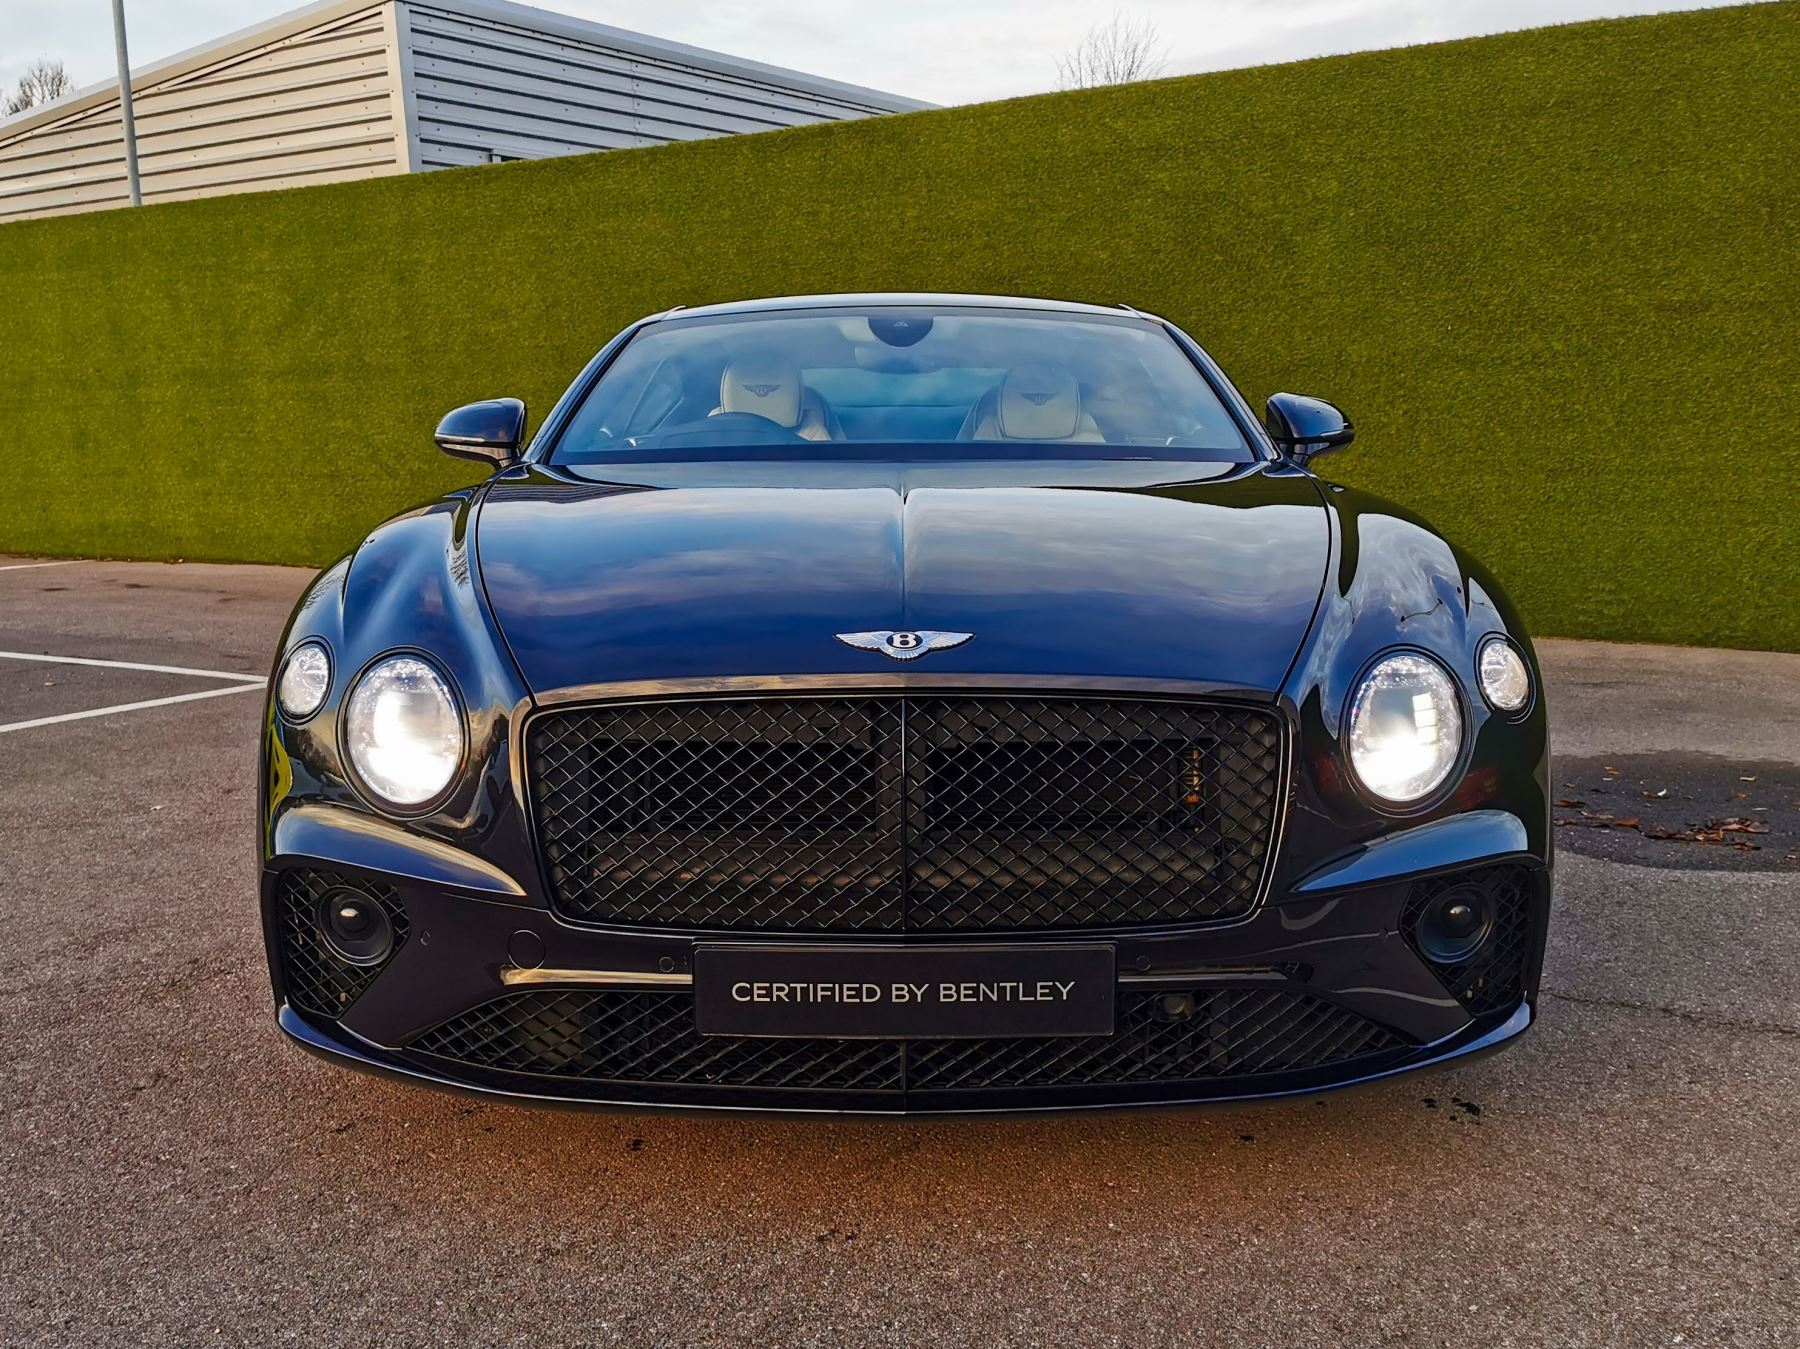 Bentley Continental GT 6.0 W12 2dr image 2